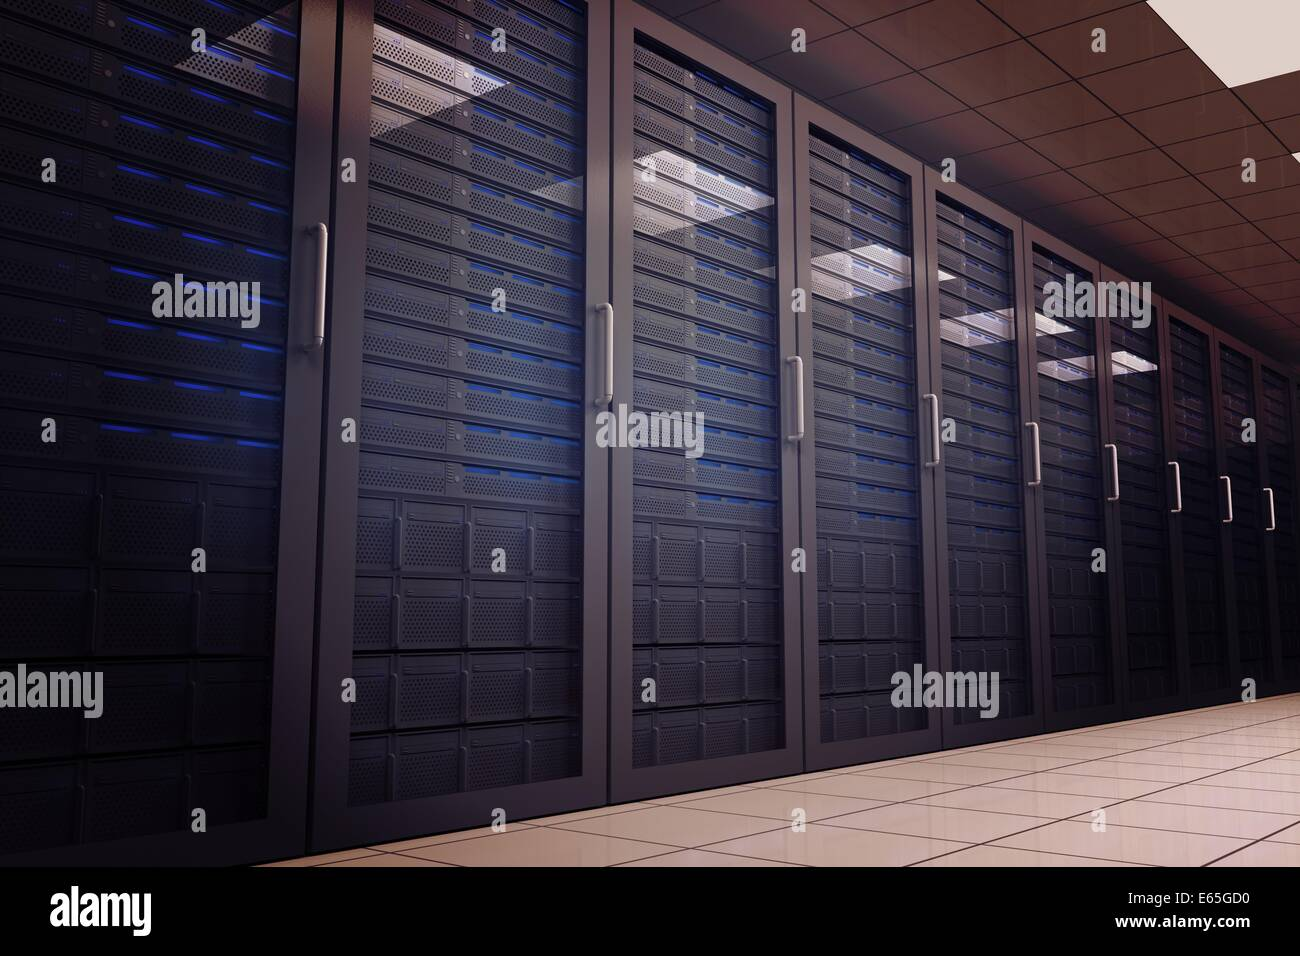 Digitally generated server room with towers - Stock Image